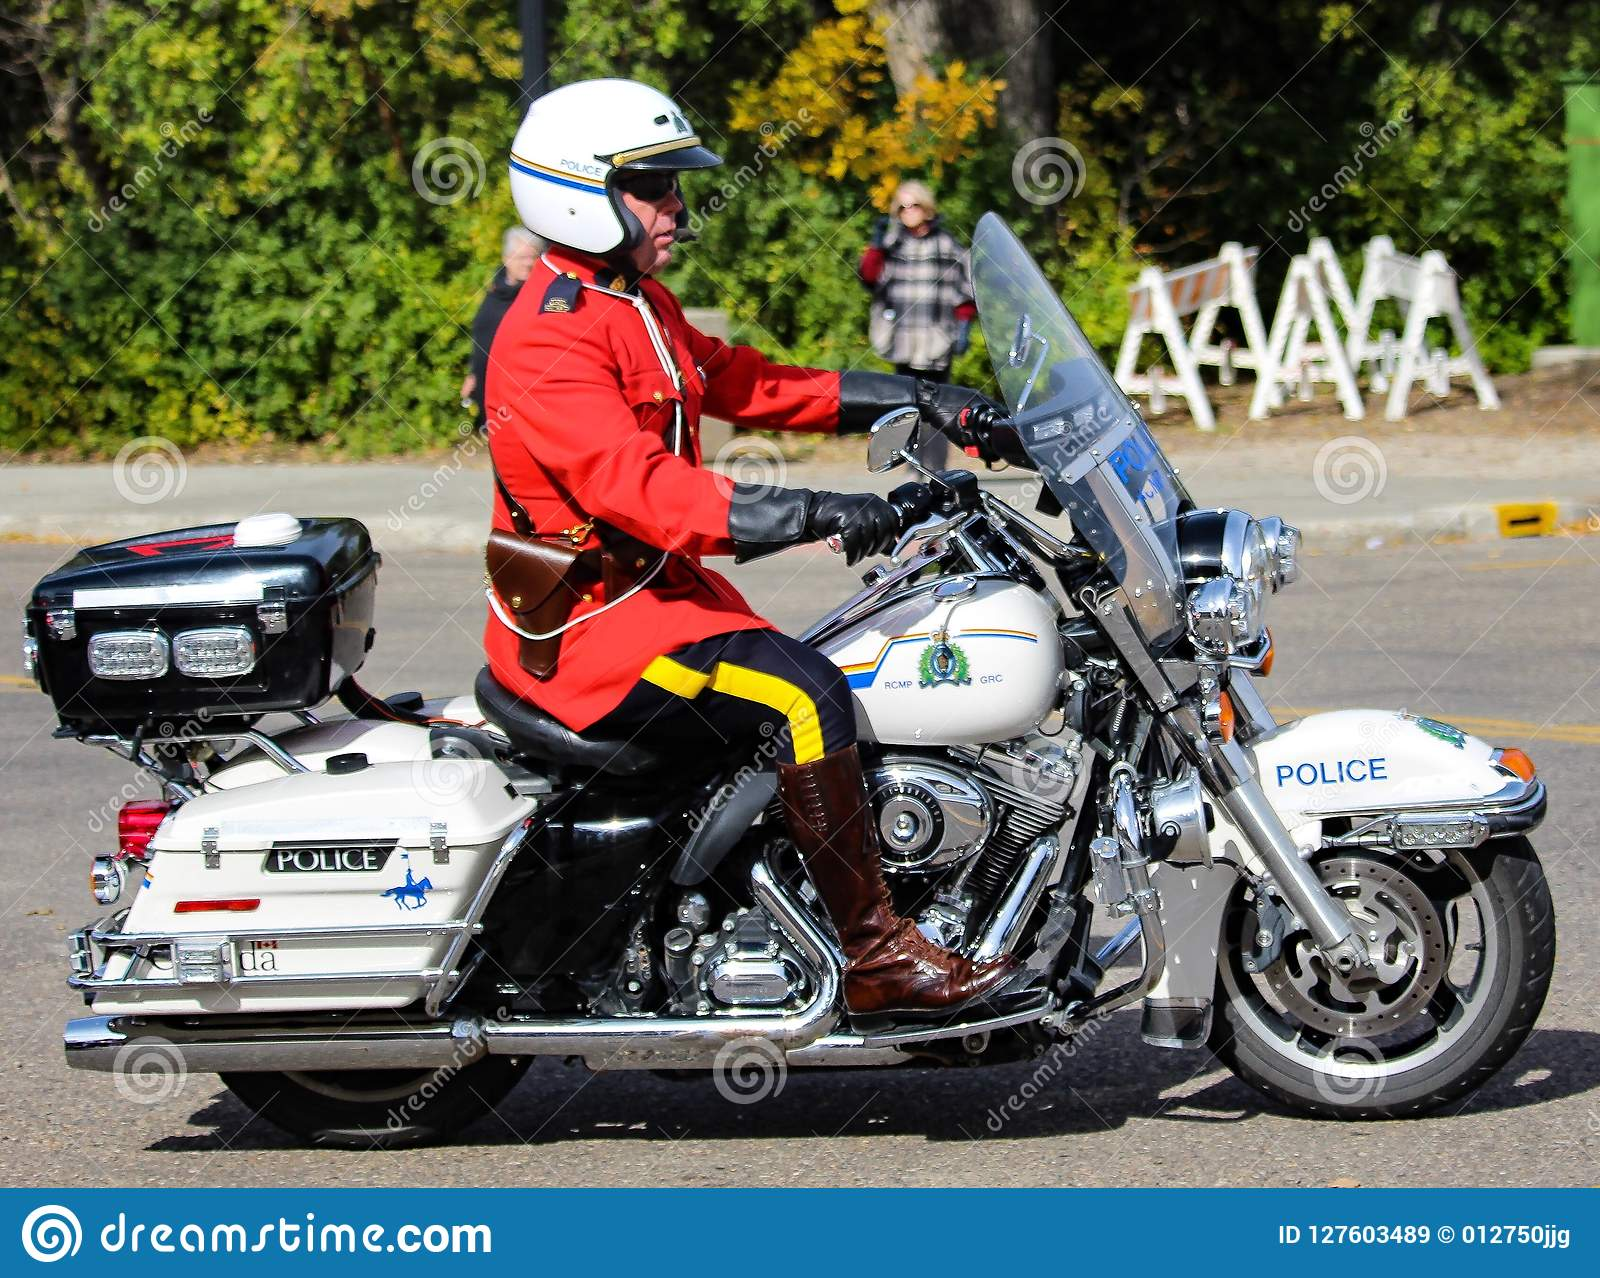 RCMP Motorcycle rider in red surge uniform